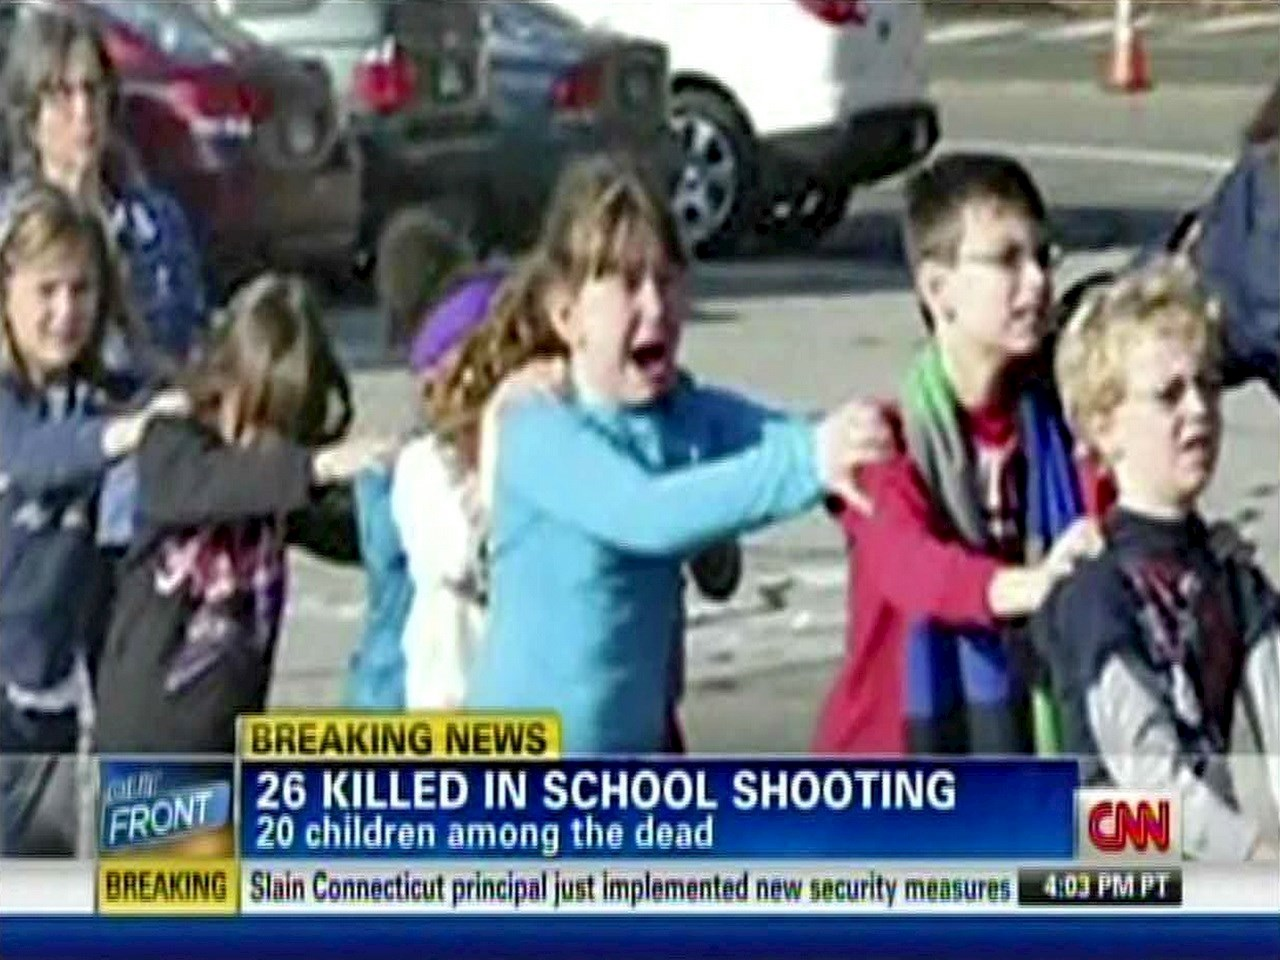 the sandy hook elementary school shooting Authorities say 27 people are dead, including the gunman, after a shooting at sandy hook elementary school in newtown, conn twenty of the victims were children, making this one of the deadliest school shootings in us history.